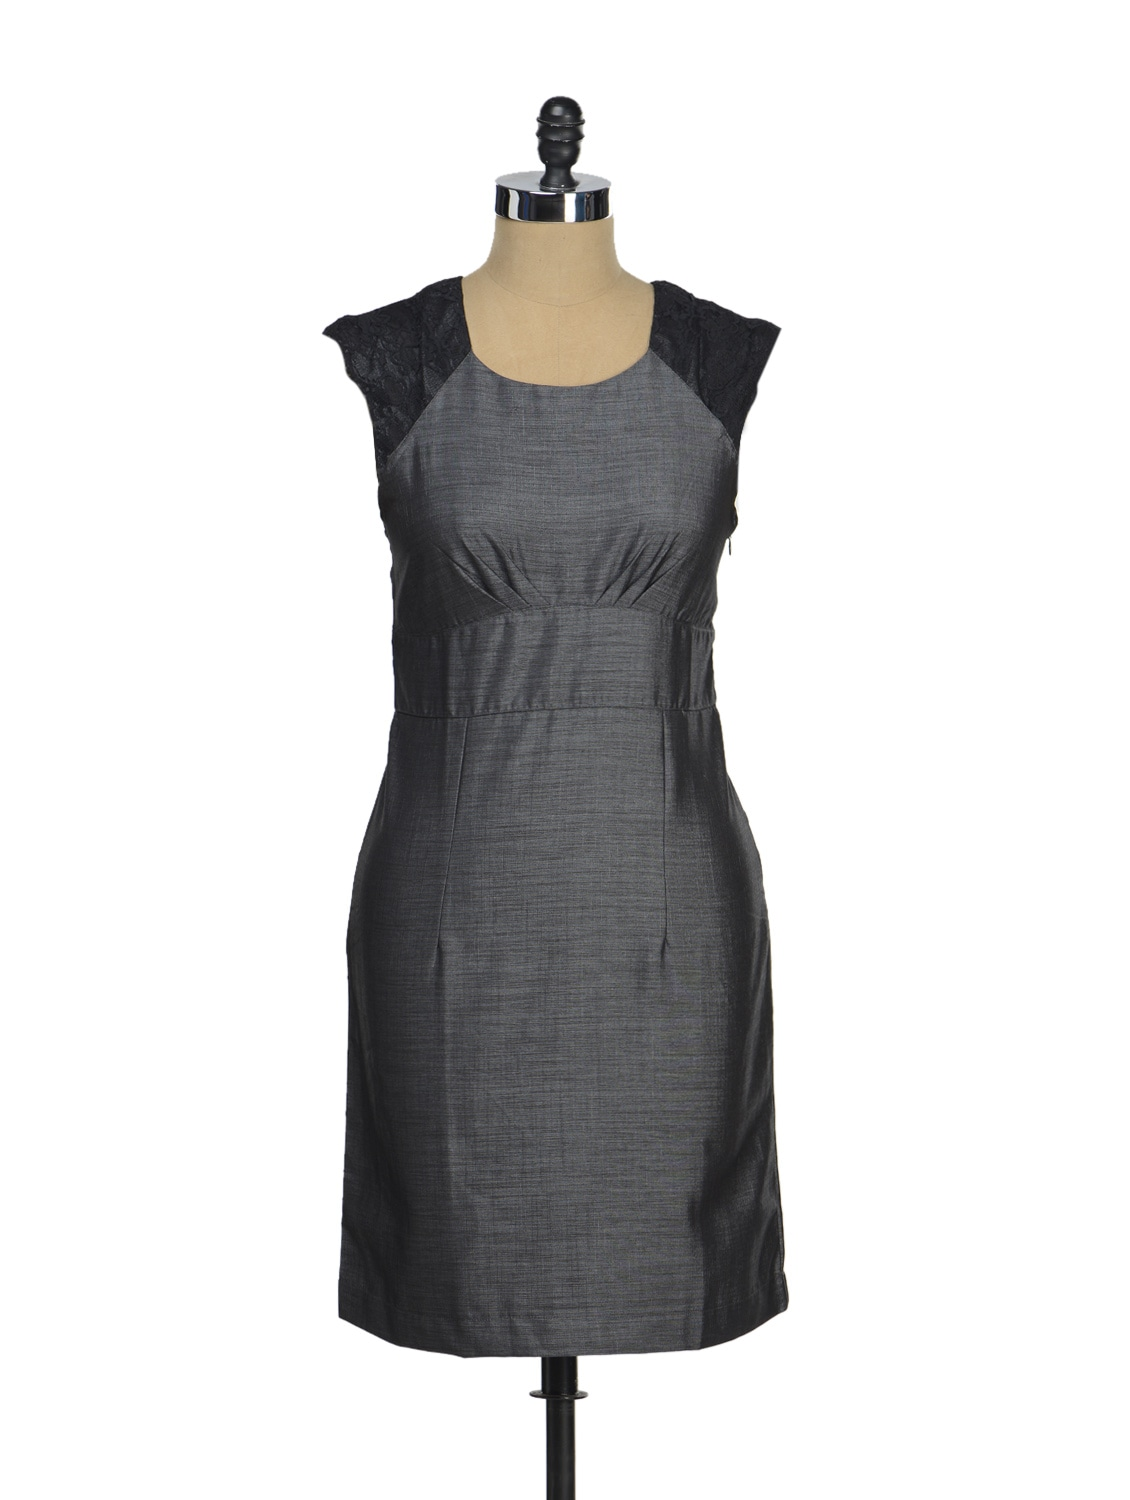 Chic Grey & Black Dress - AND